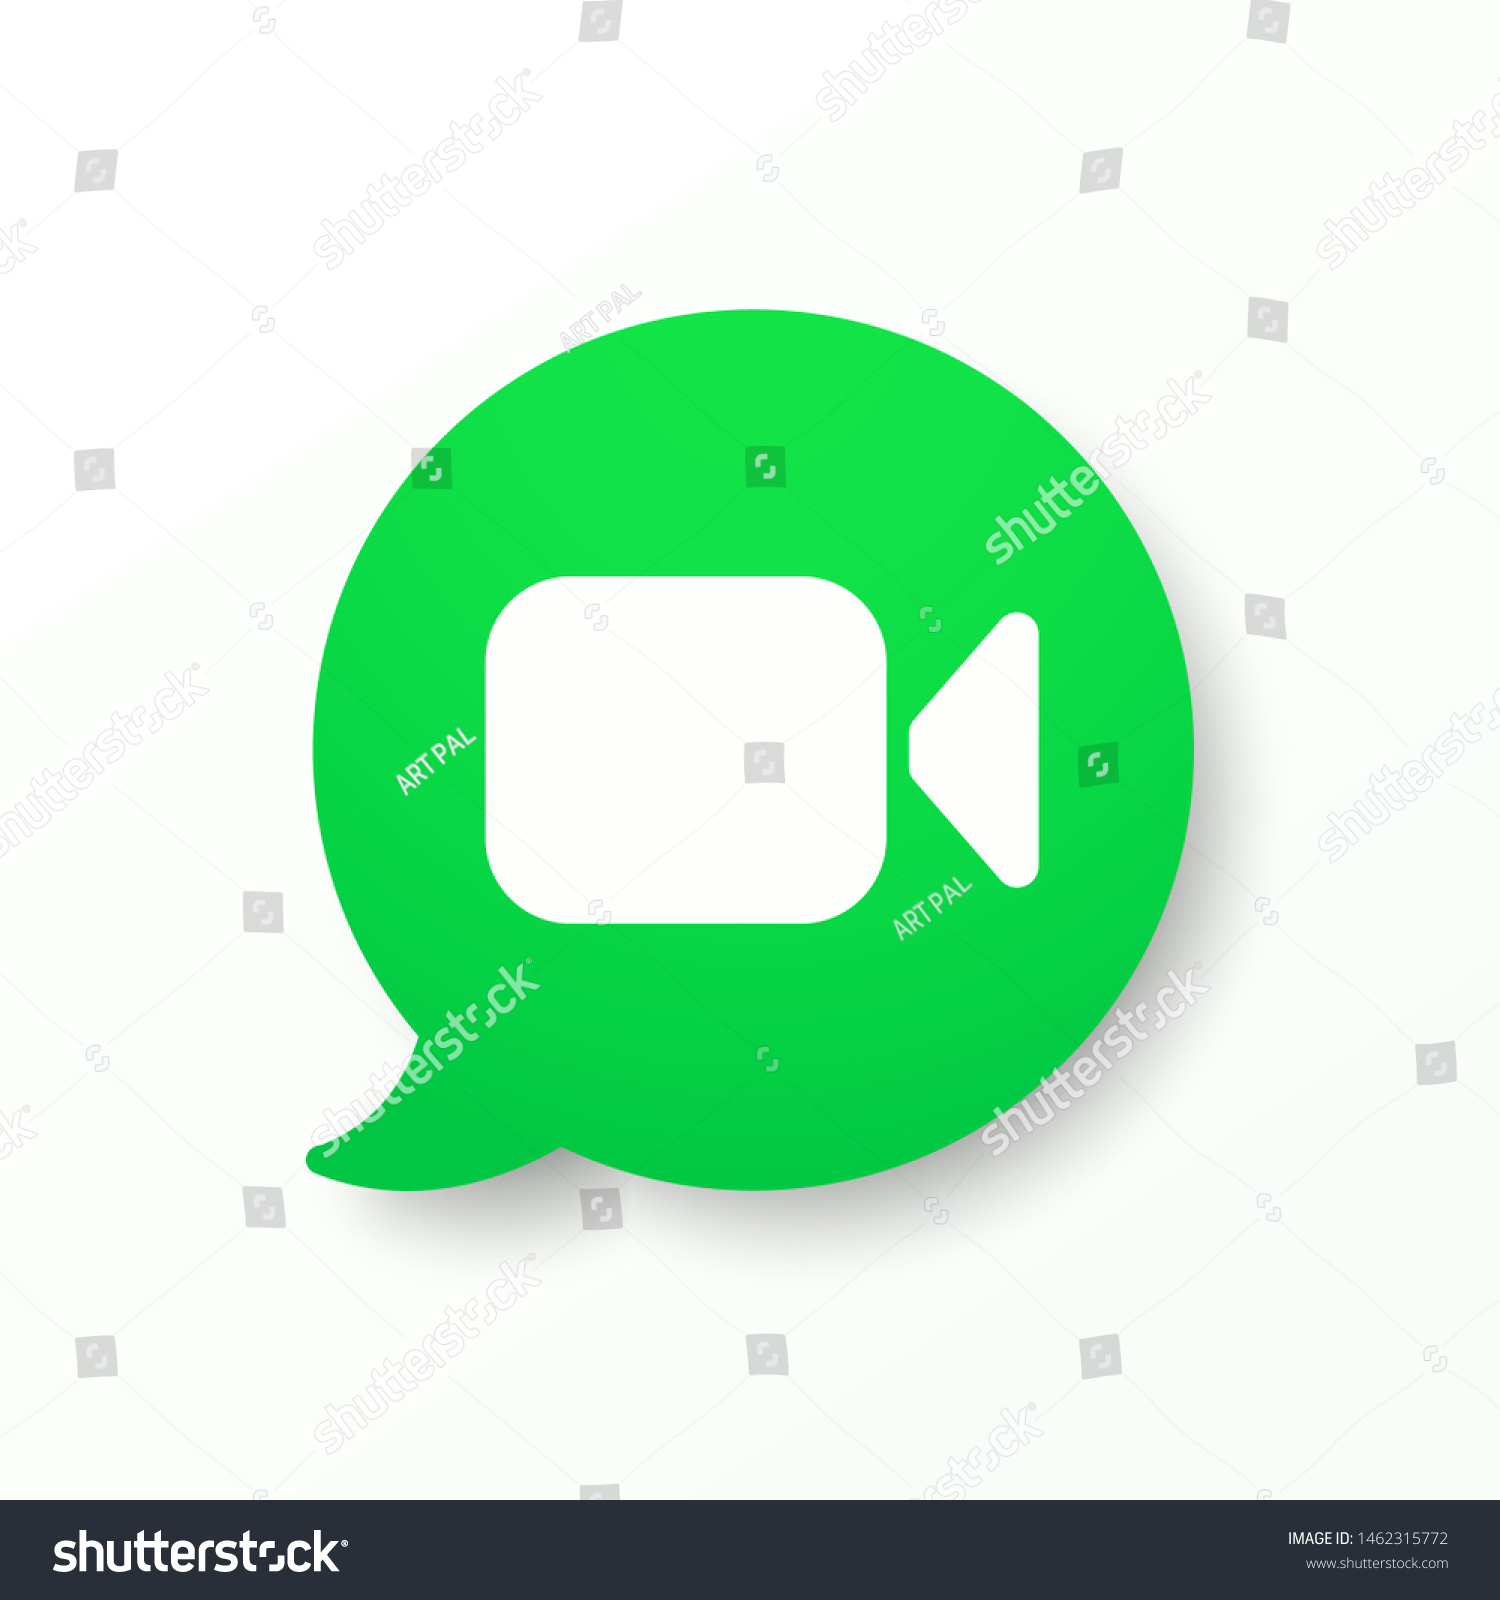 Mockup Green Button Video Call Video Stock Vector Royalty Free